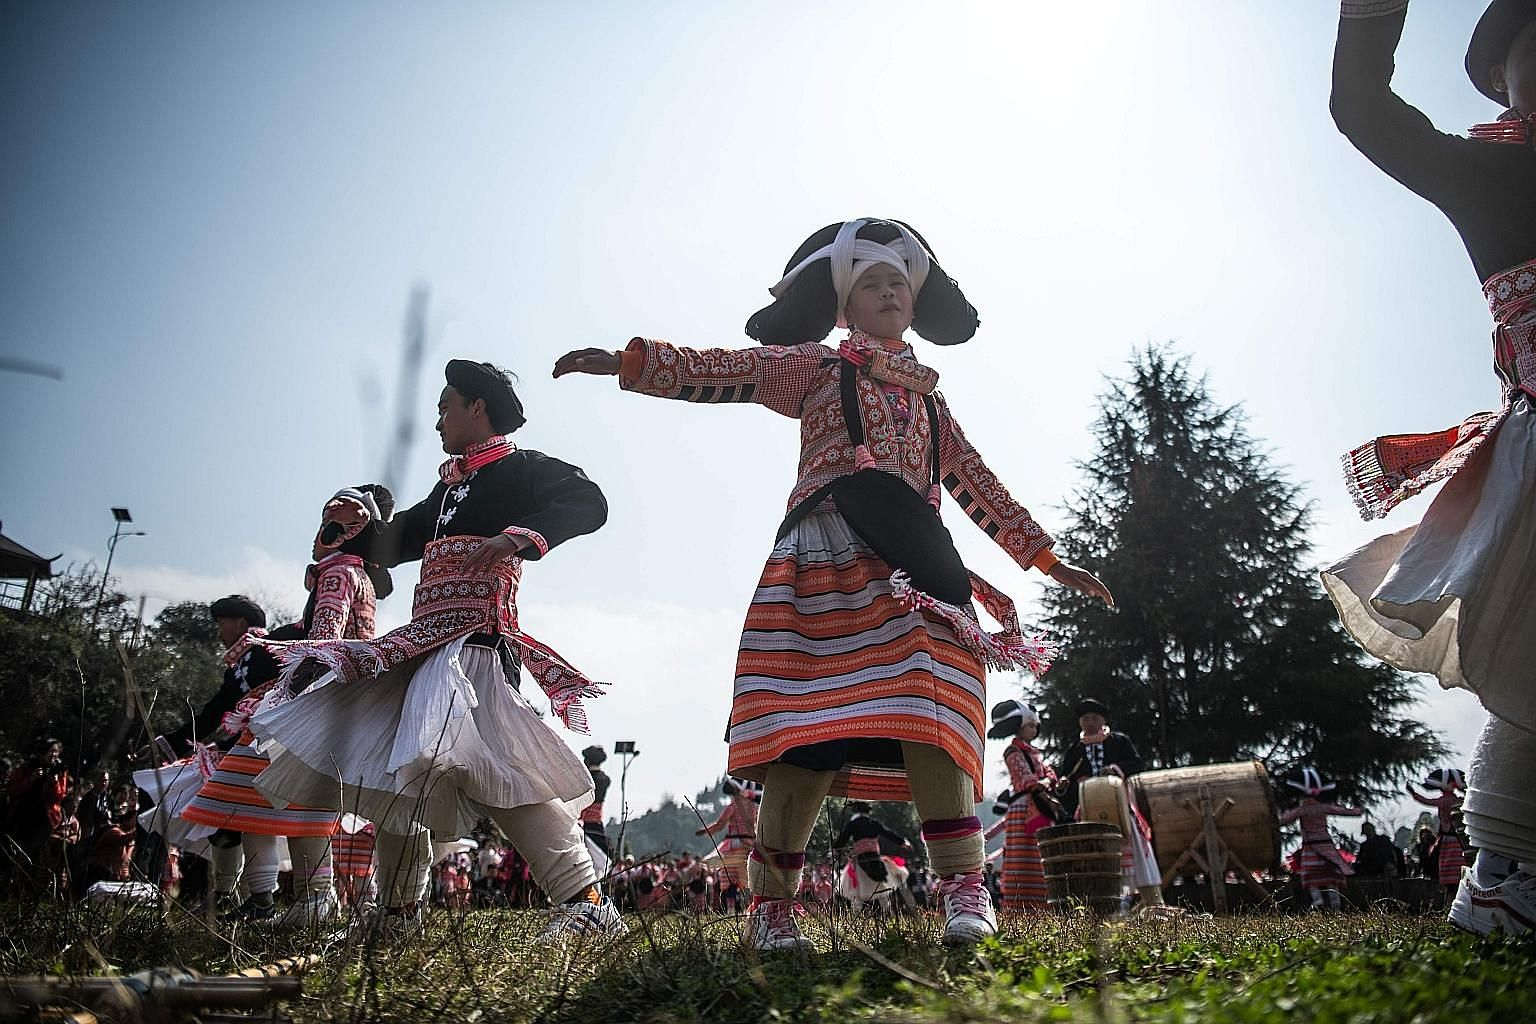 """Girls from the Long Horn Miao, a branch of the Miao ethnic minority group, taking part in the annual flower festival or """"Tiaohuajie"""" in the village of Longjia in China's Guizhou province to celebrate Chinese New Year. The dozens of dancers stood out"""